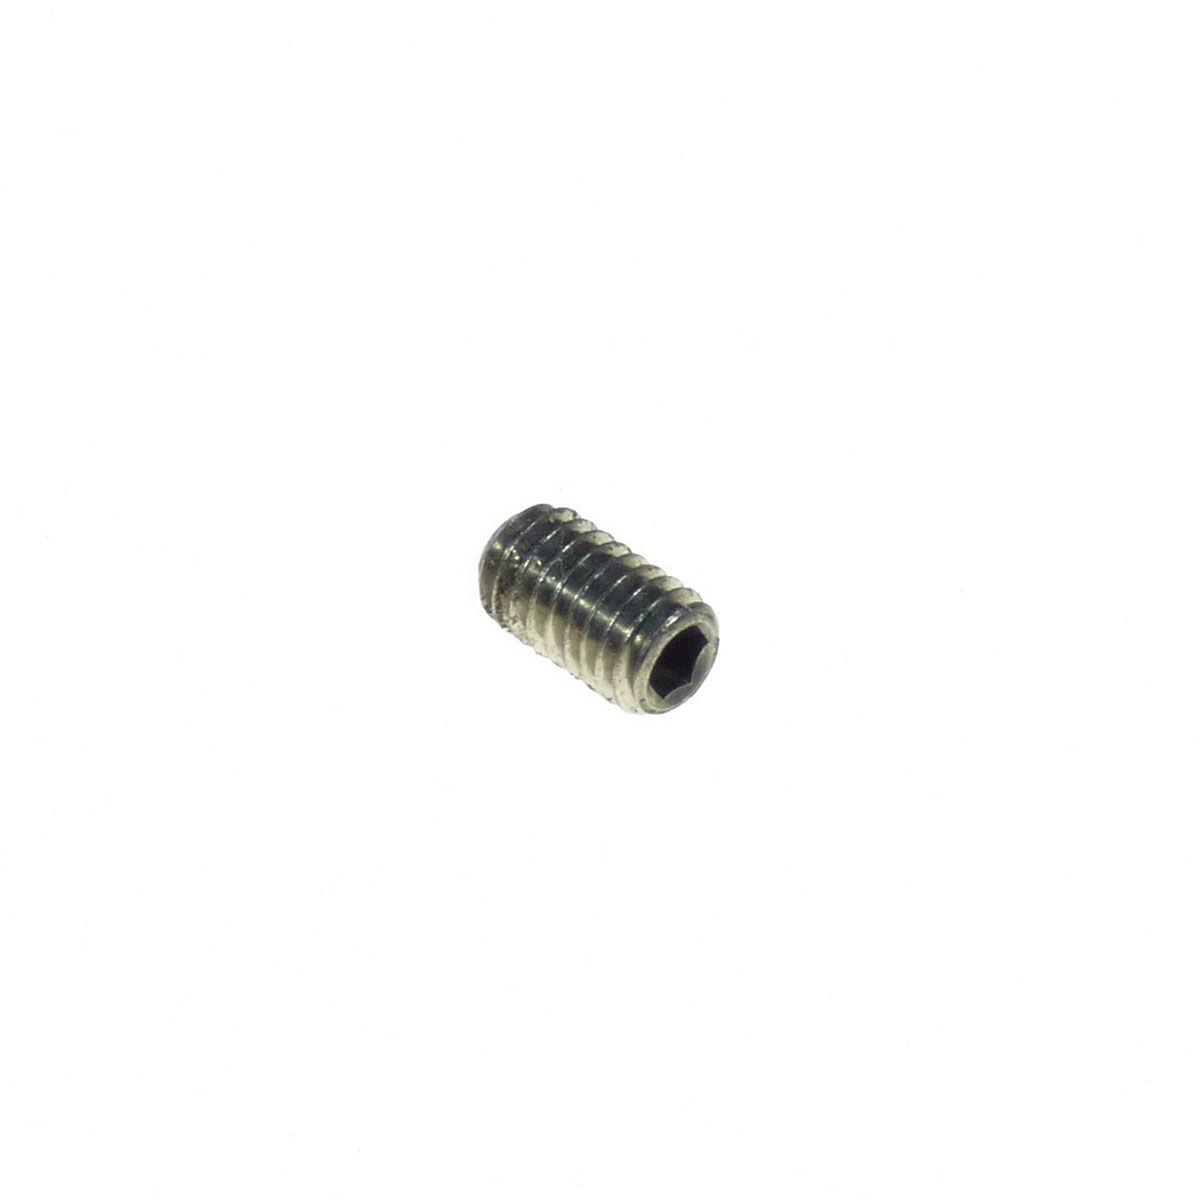 Torqeedo Set screw M3x5 for gear